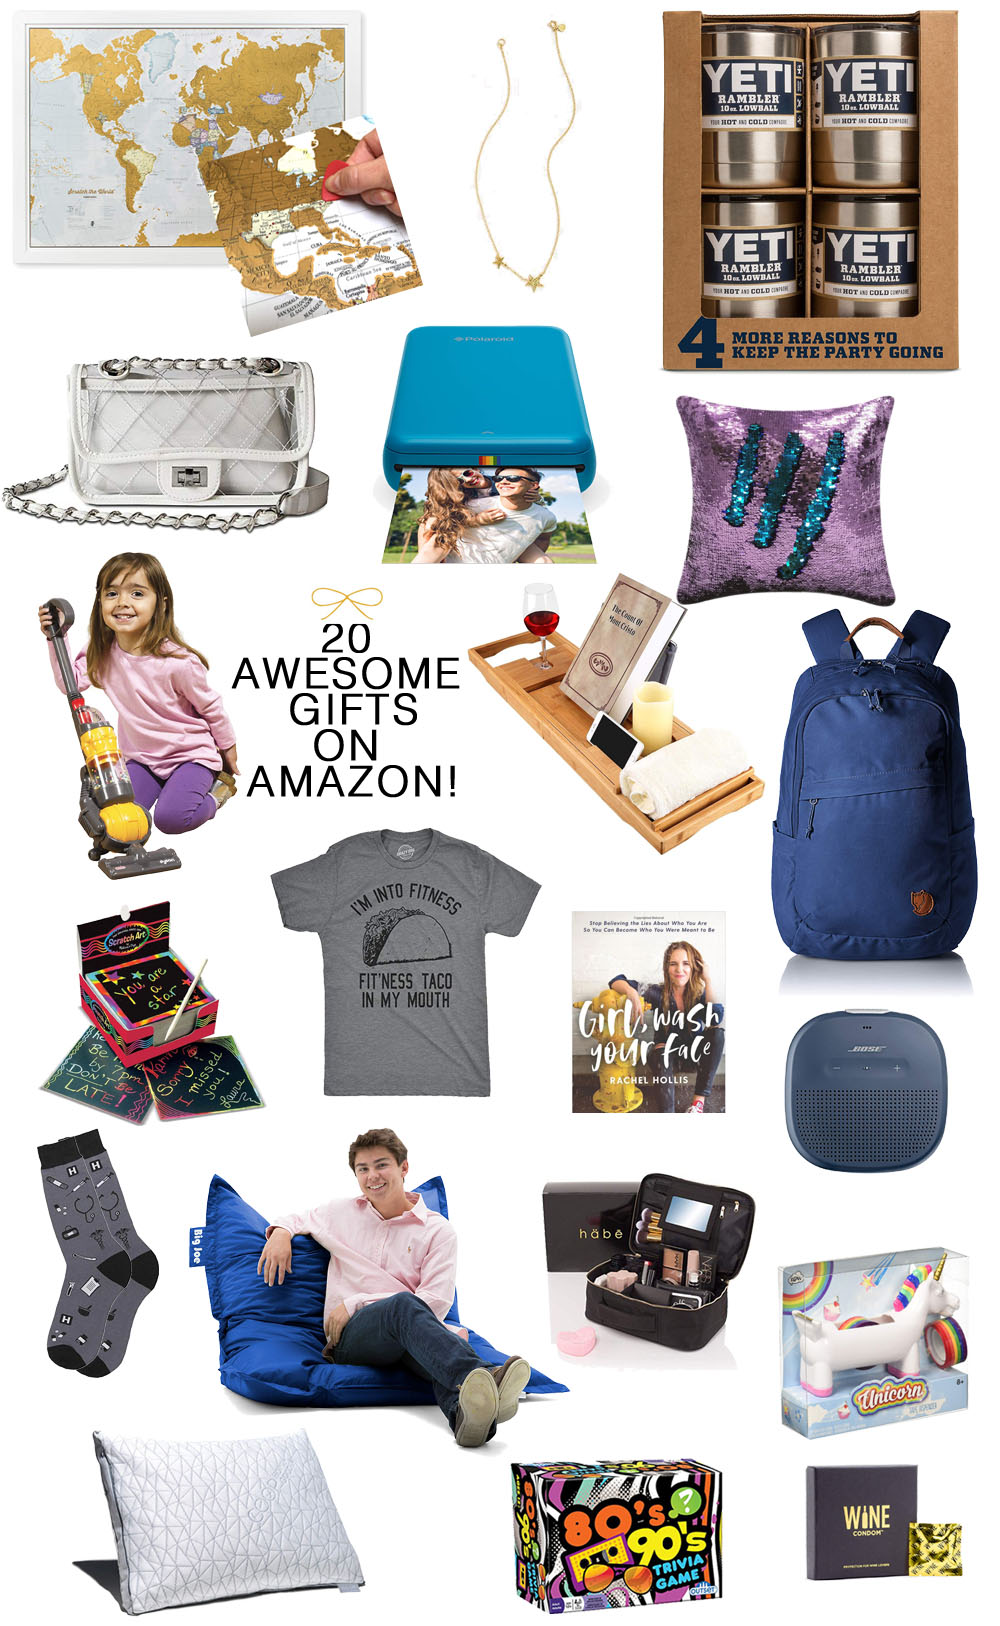 45046f1fb2 ... Everyone on your List. Amazon Gift Guide: 20 Awesome GIft Ideas  Available on Amazon #giftideas #amazon #